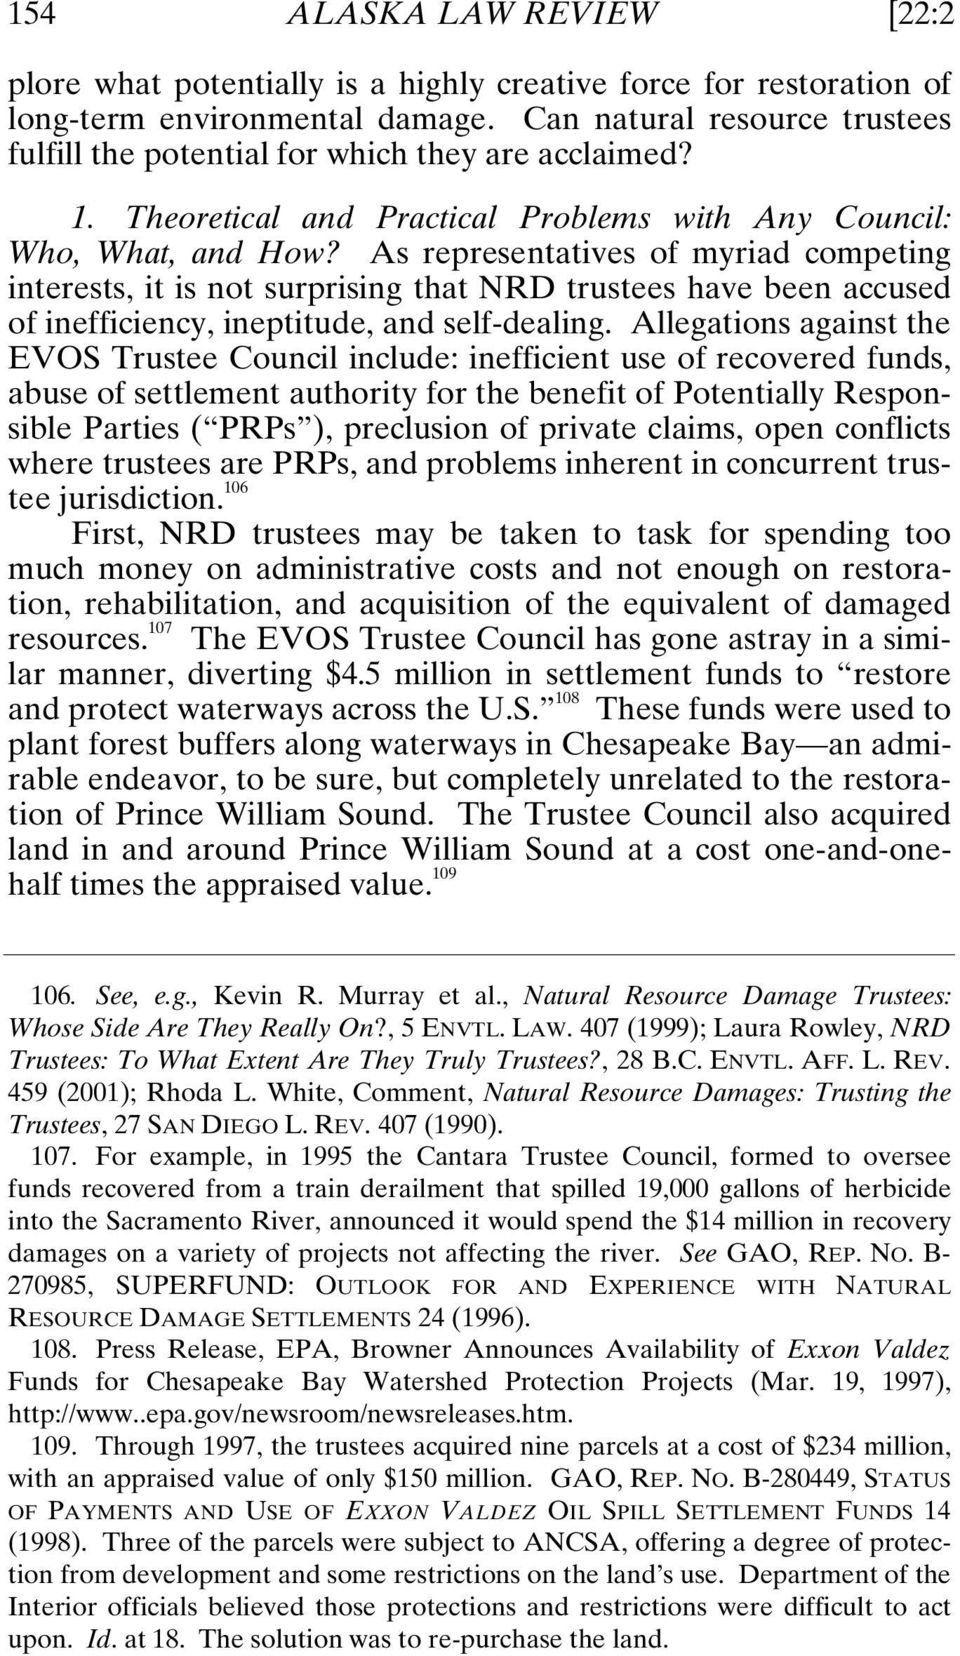 As representatives of myriad competing interests, it is not surprising that NRD trustees have been accused of inefficiency, ineptitude, and self-dealing.